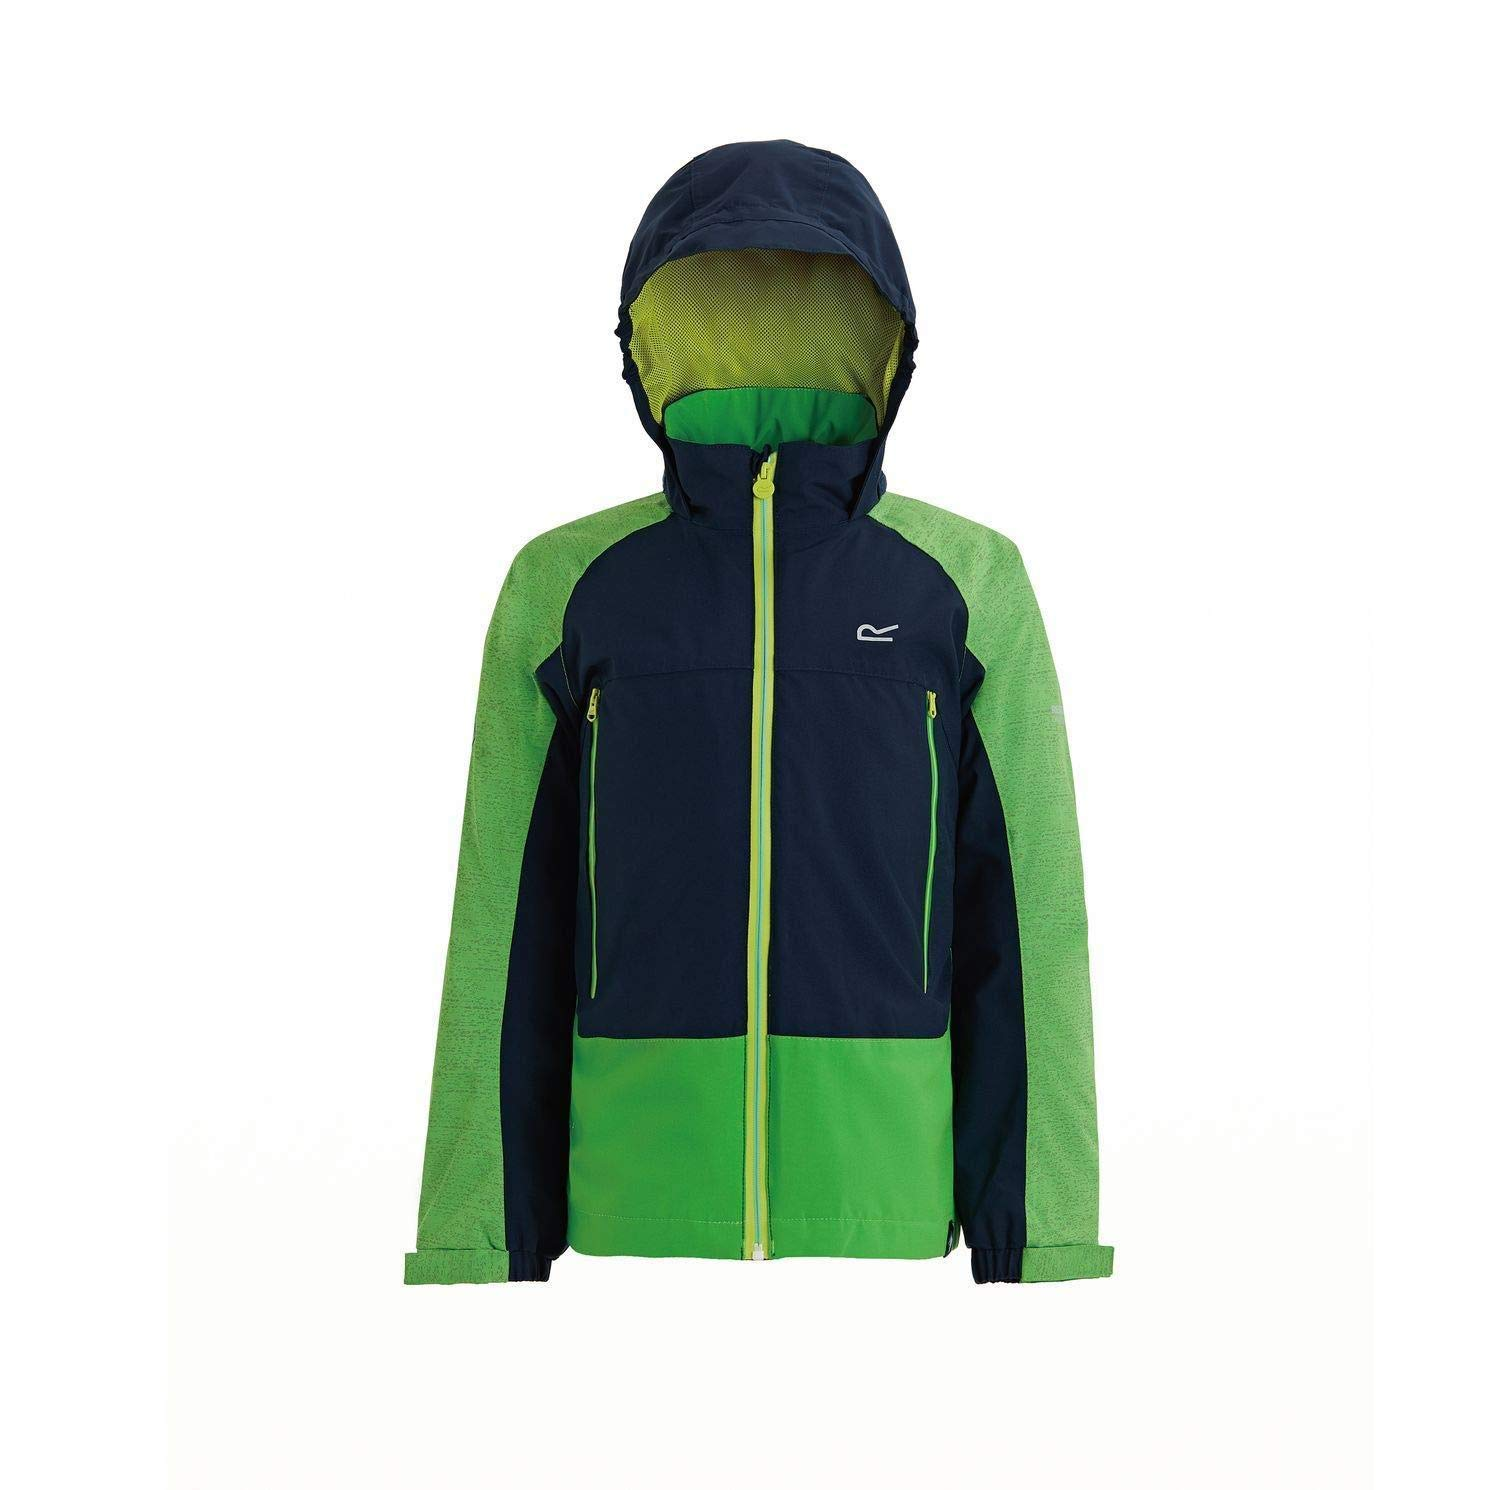 Fairway vert  Navy 7 - 8 years (EU 128) Regatta Hydrate III 3-in-1 Enfants veste